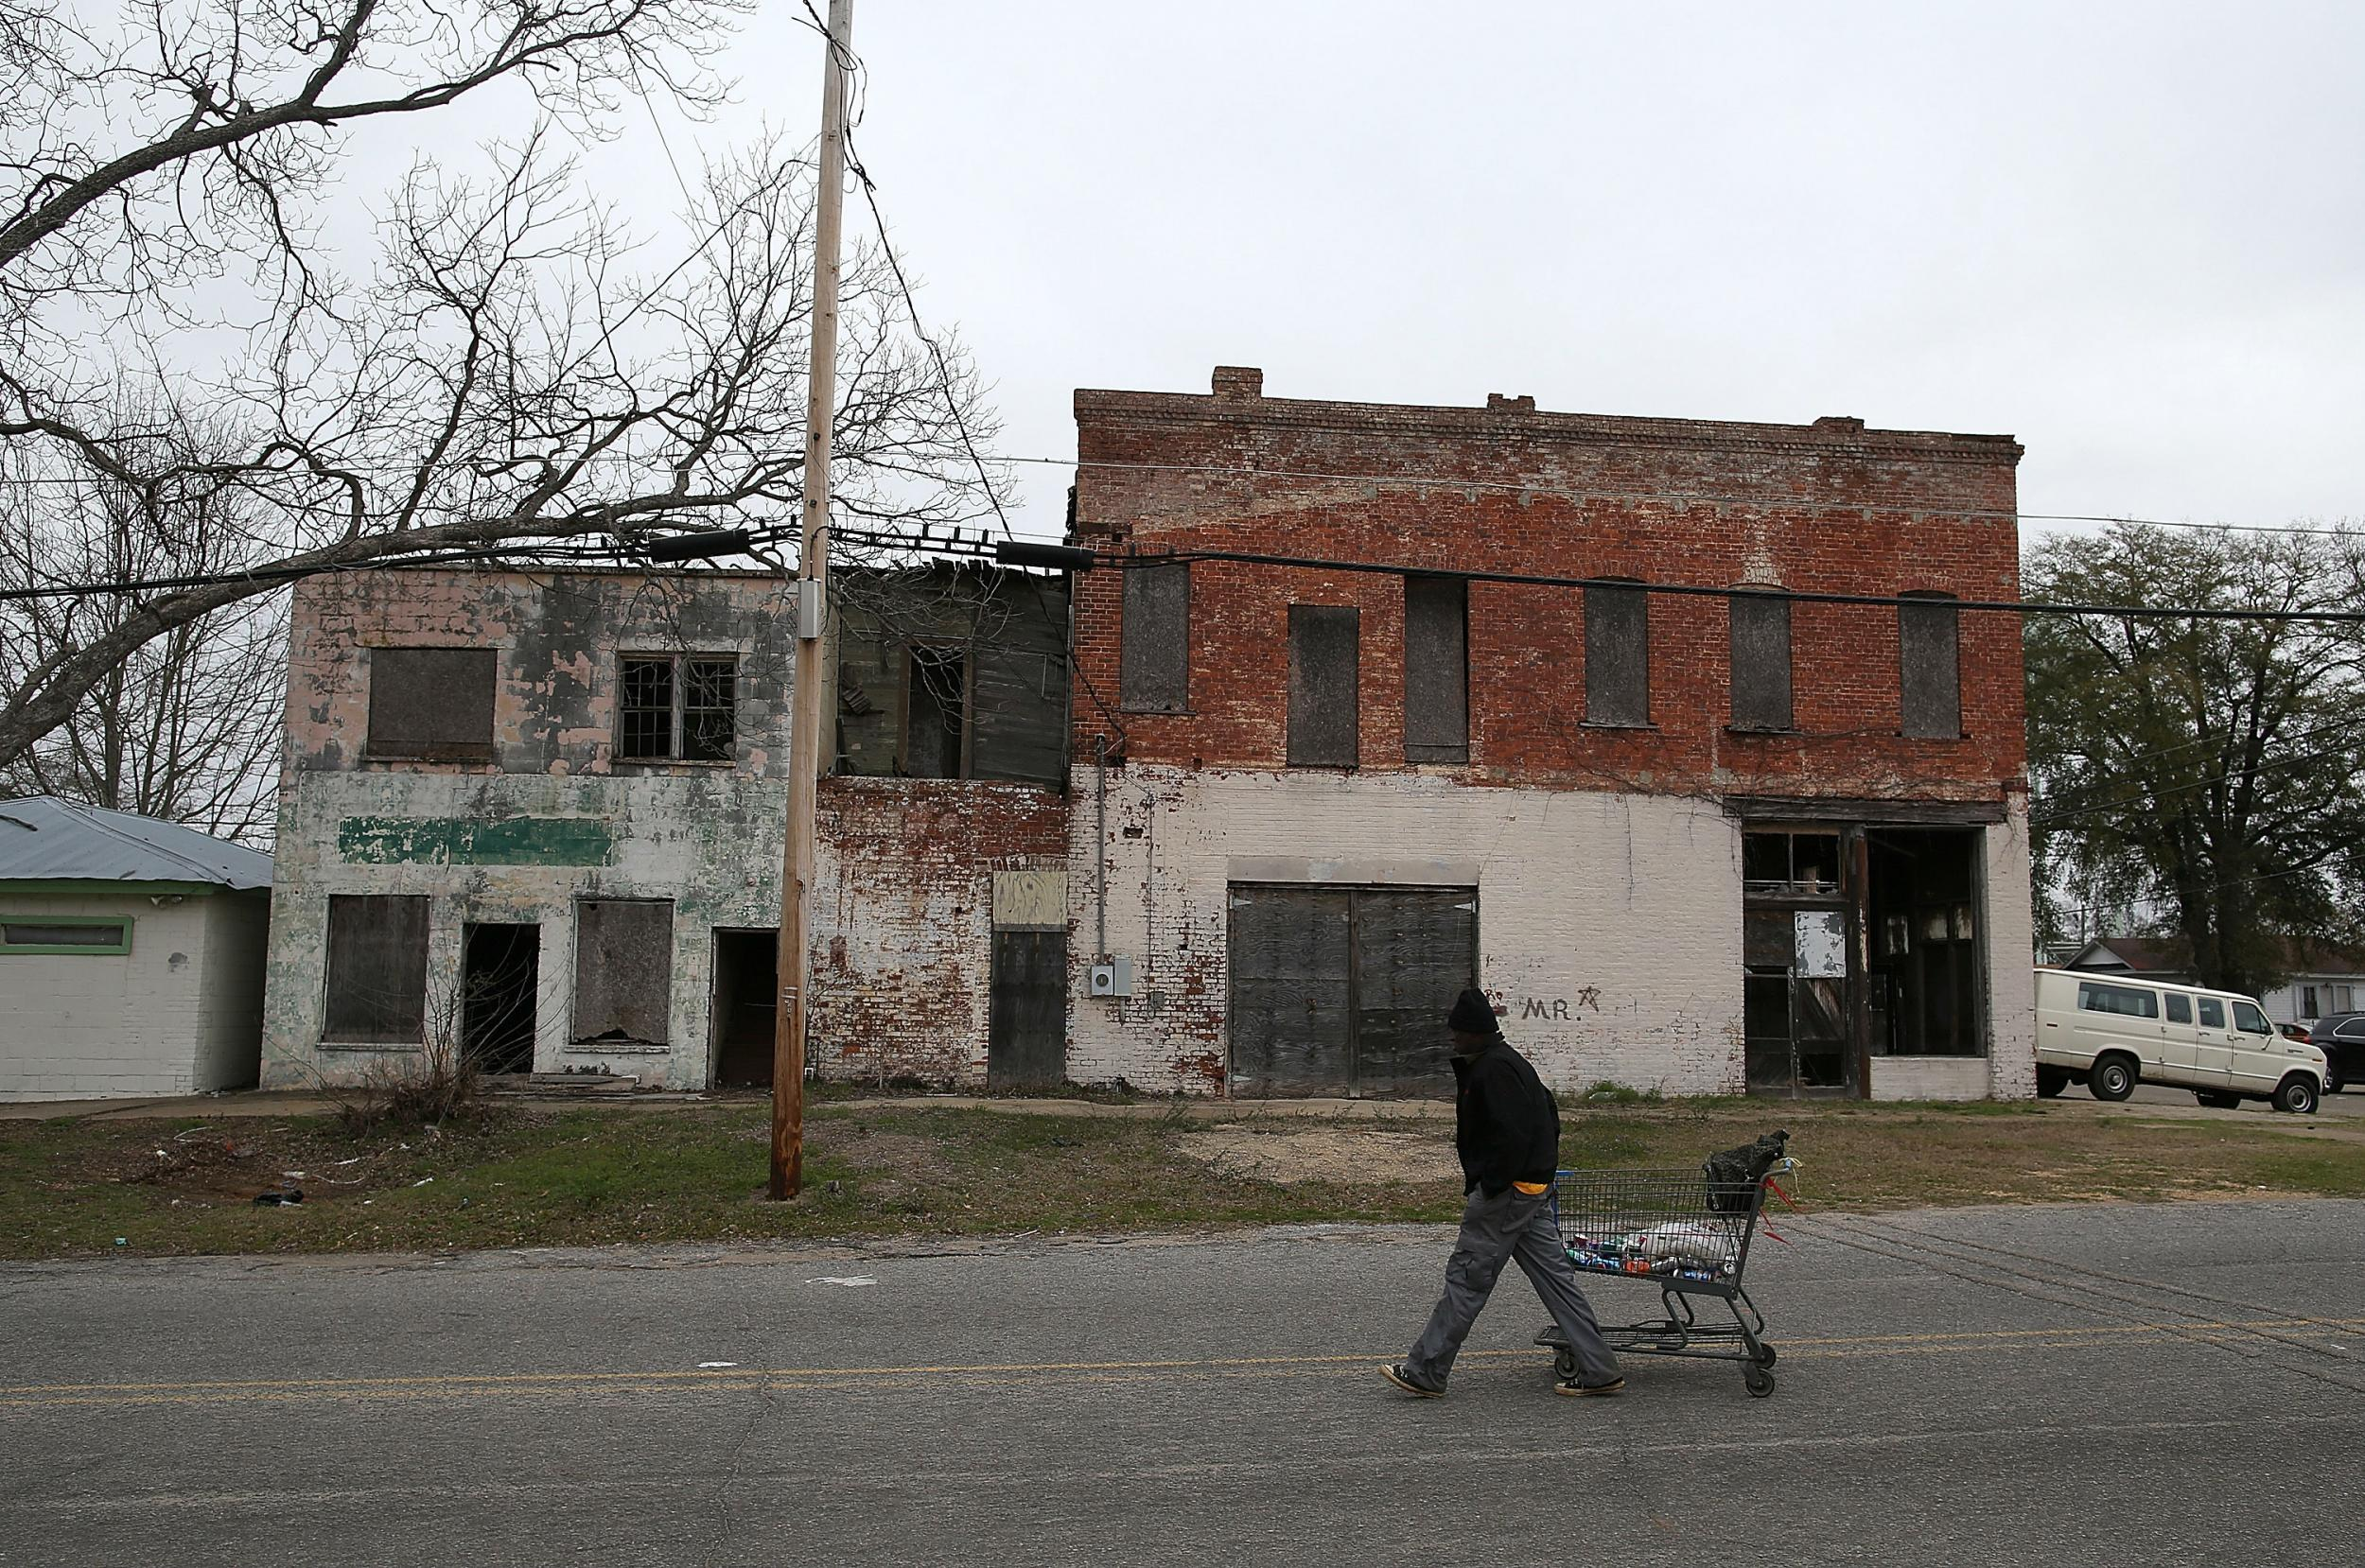 UN Shocked By Level Of Poverty In Alabama We Havent Seen This - Worst poverty in the world